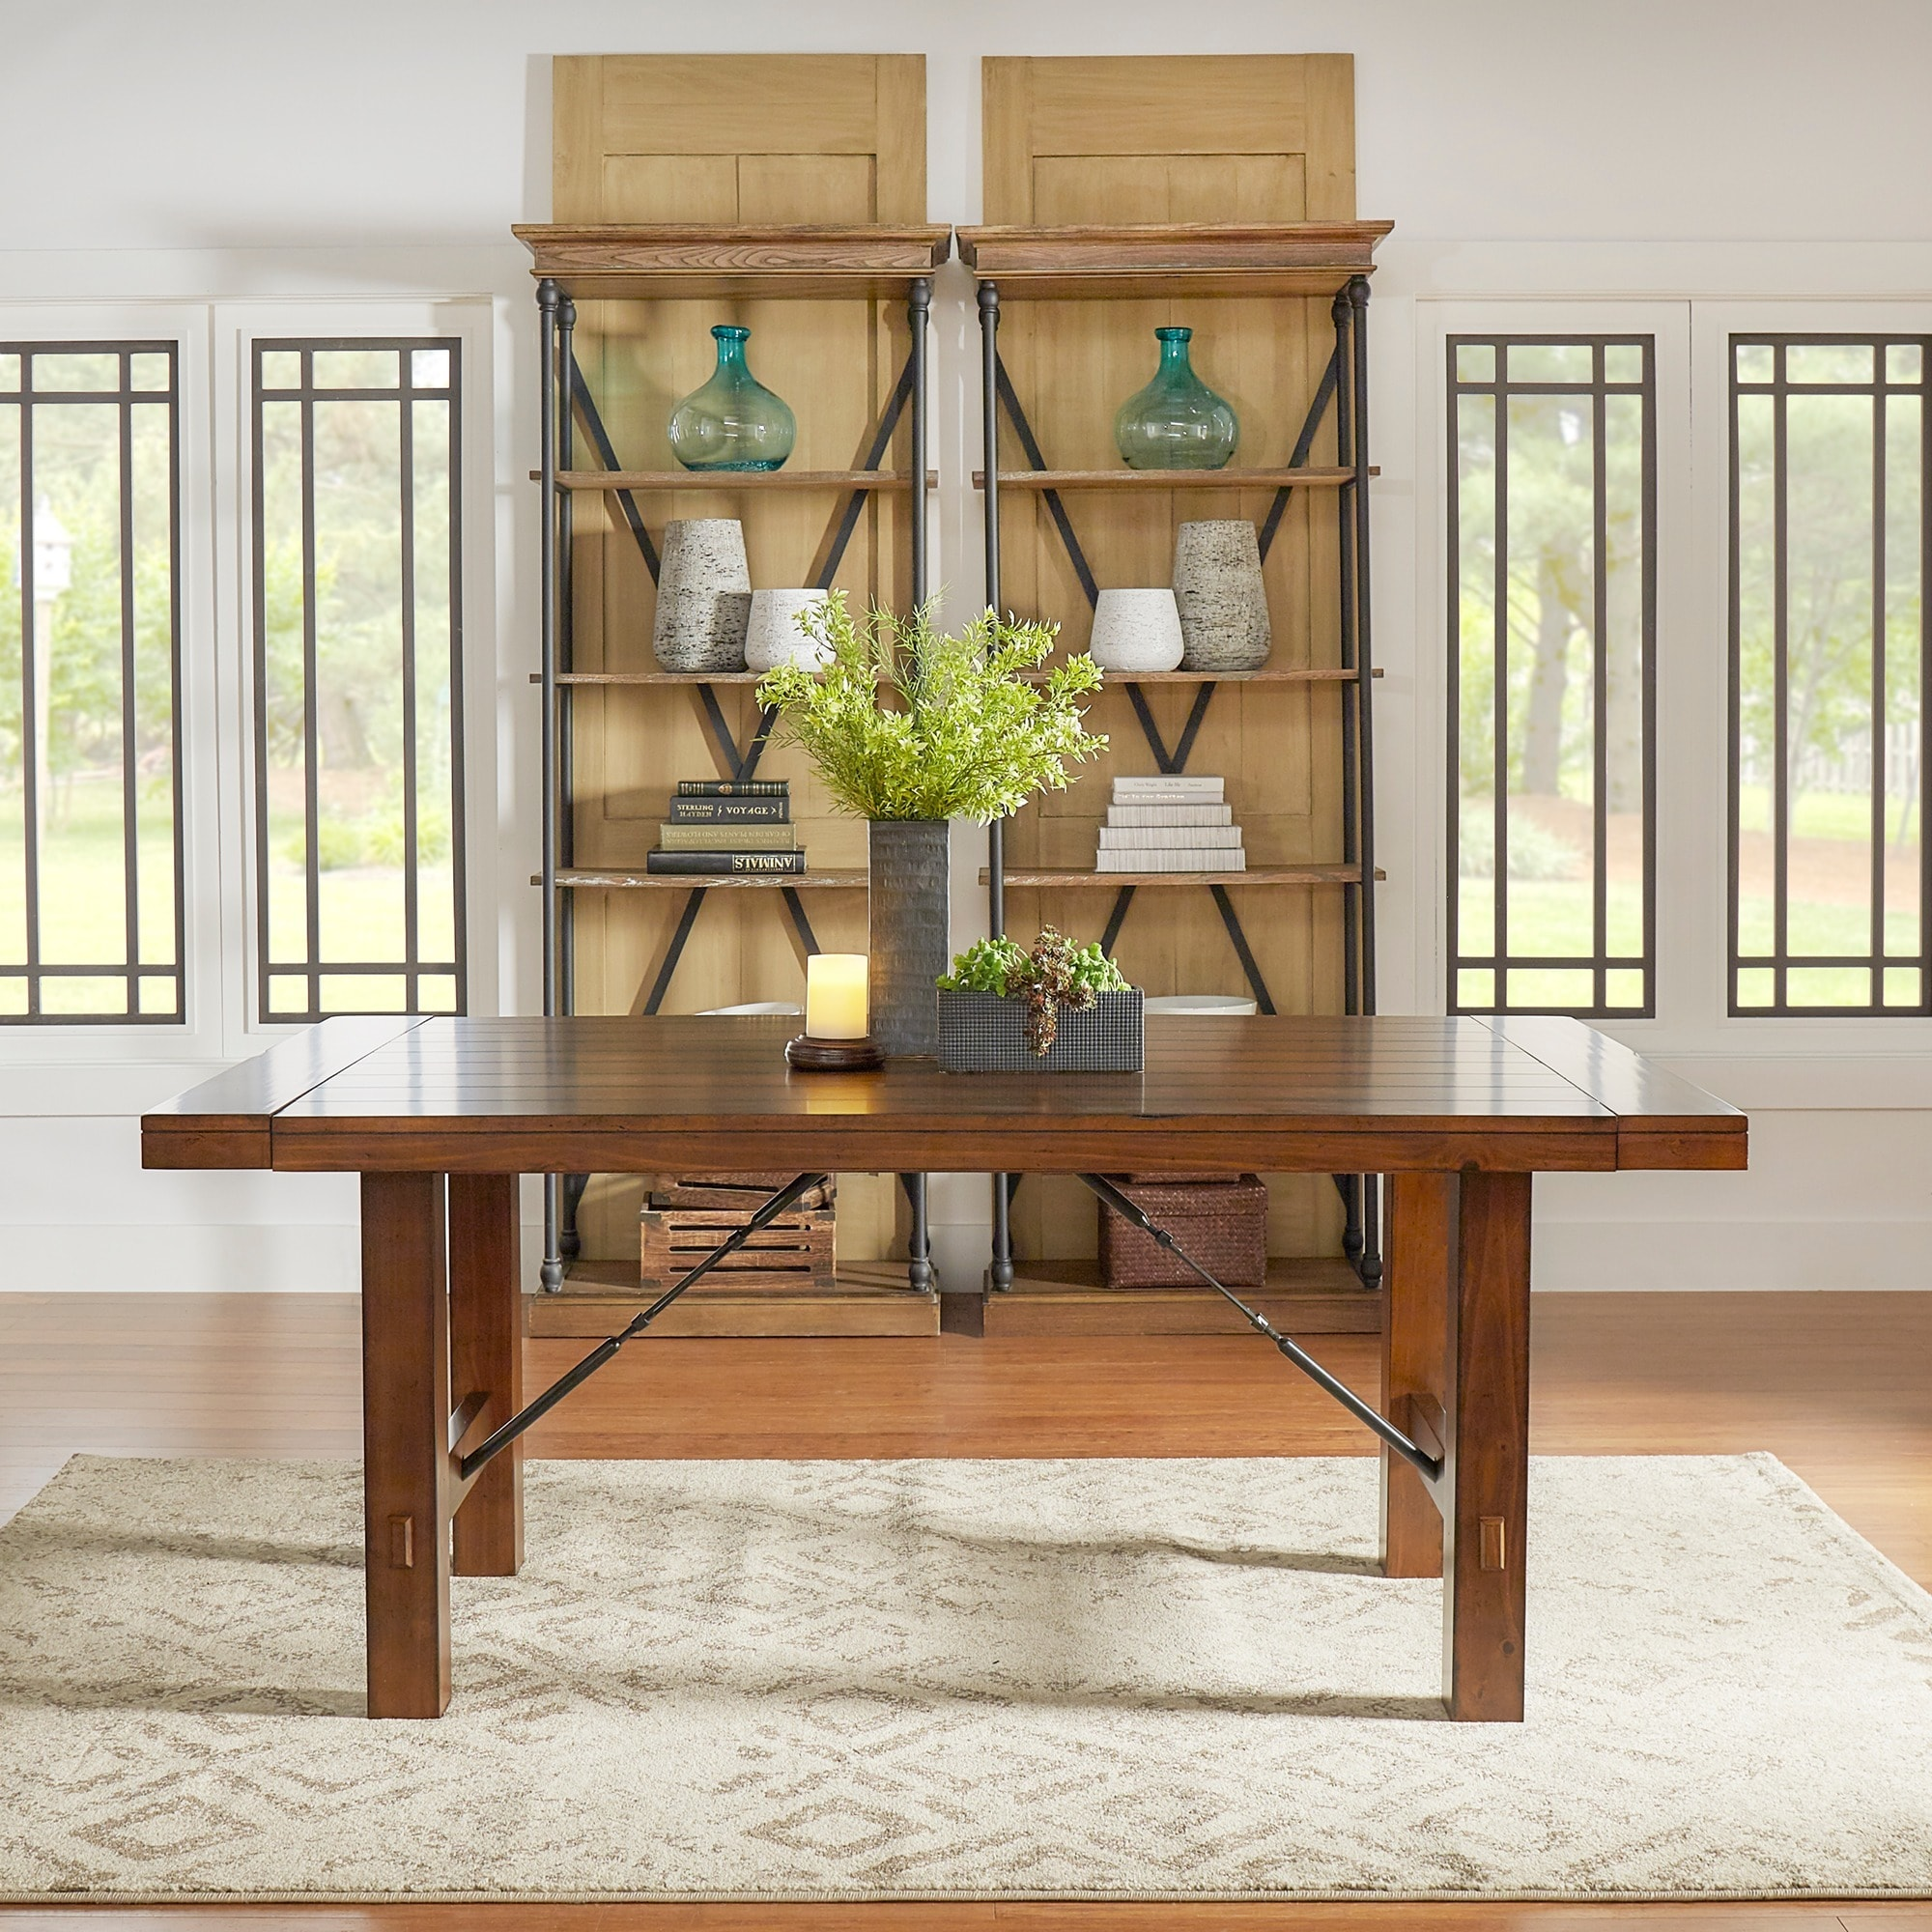 Swindon Rustic Oak Turnbuckle Extending Dining Table By INSPIRE Q Classic    Free Shipping Today   Overstock.com   16605799